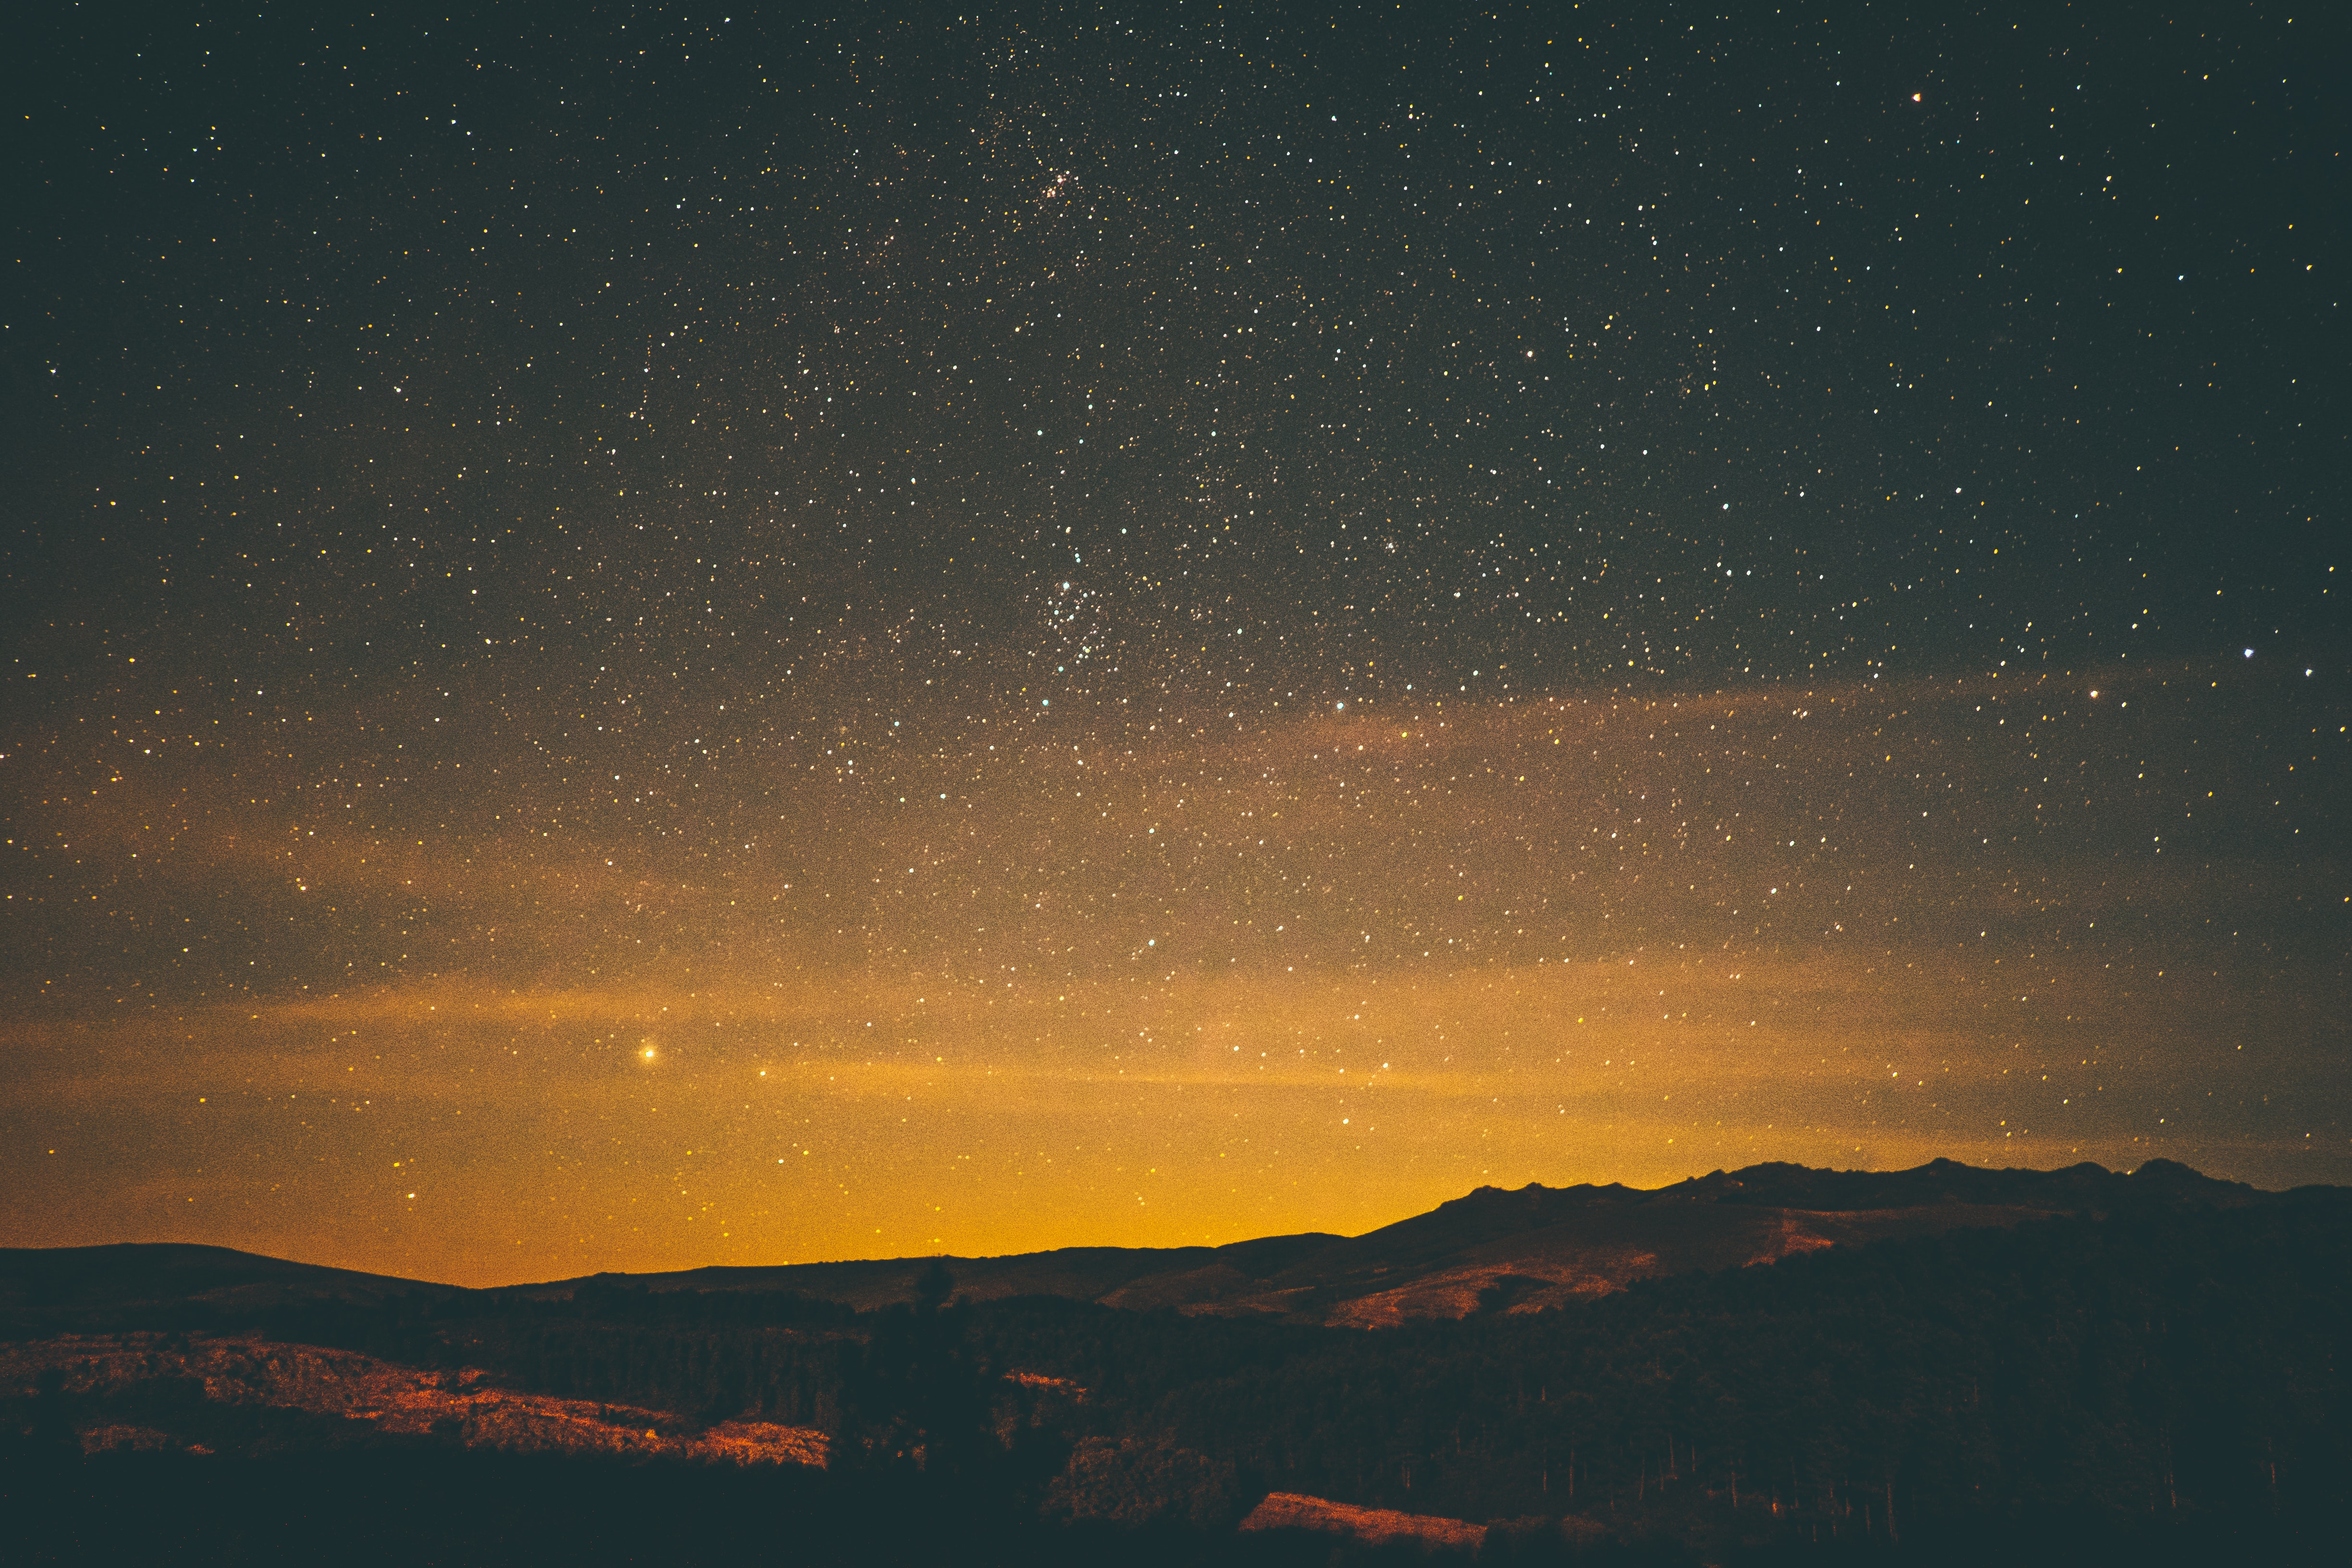 night sky with stars above mountain